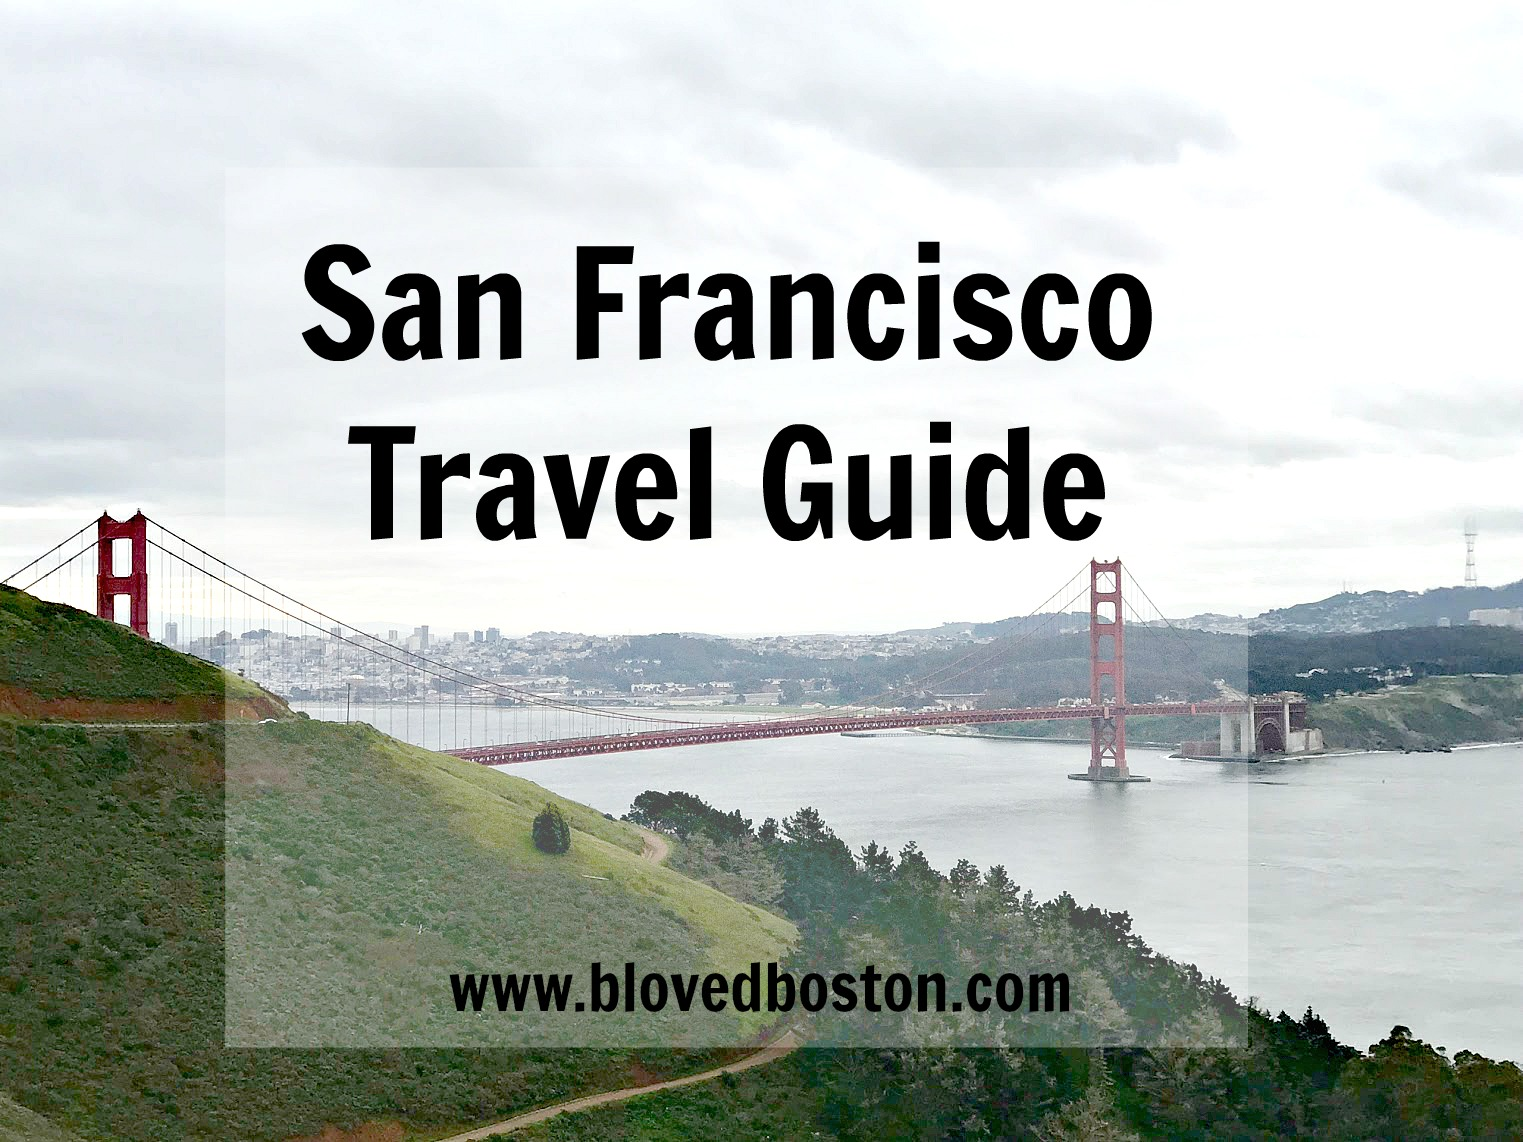 What to do in san francisco, palace of fine arts, california road trip, PCH highway, travel guide